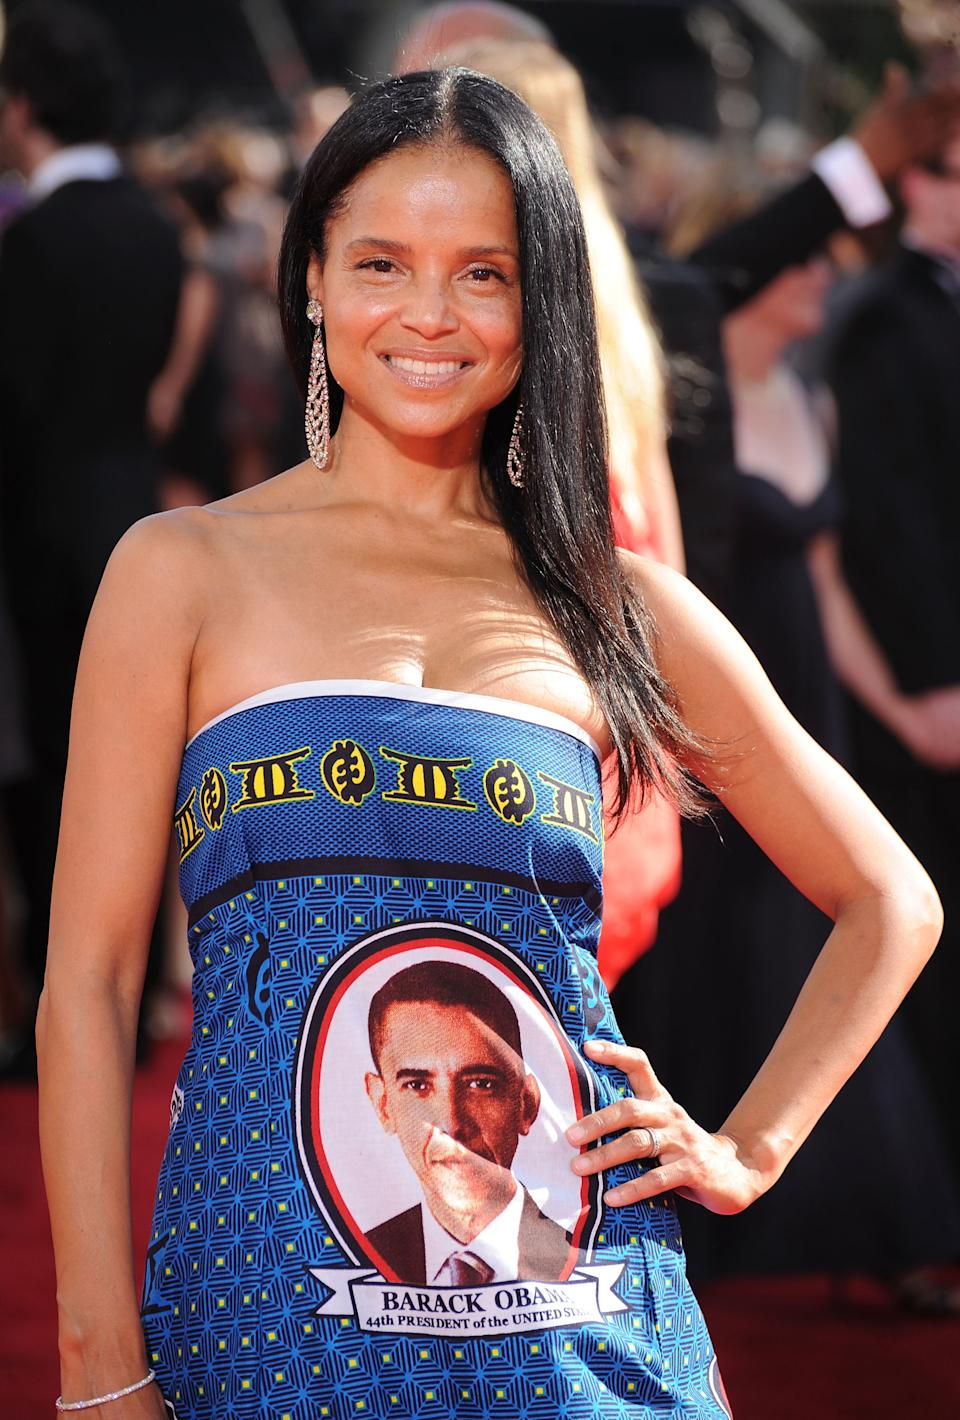 Victoria Rowell hit the Emmys red carpet in a dress honoring Barack Obama.